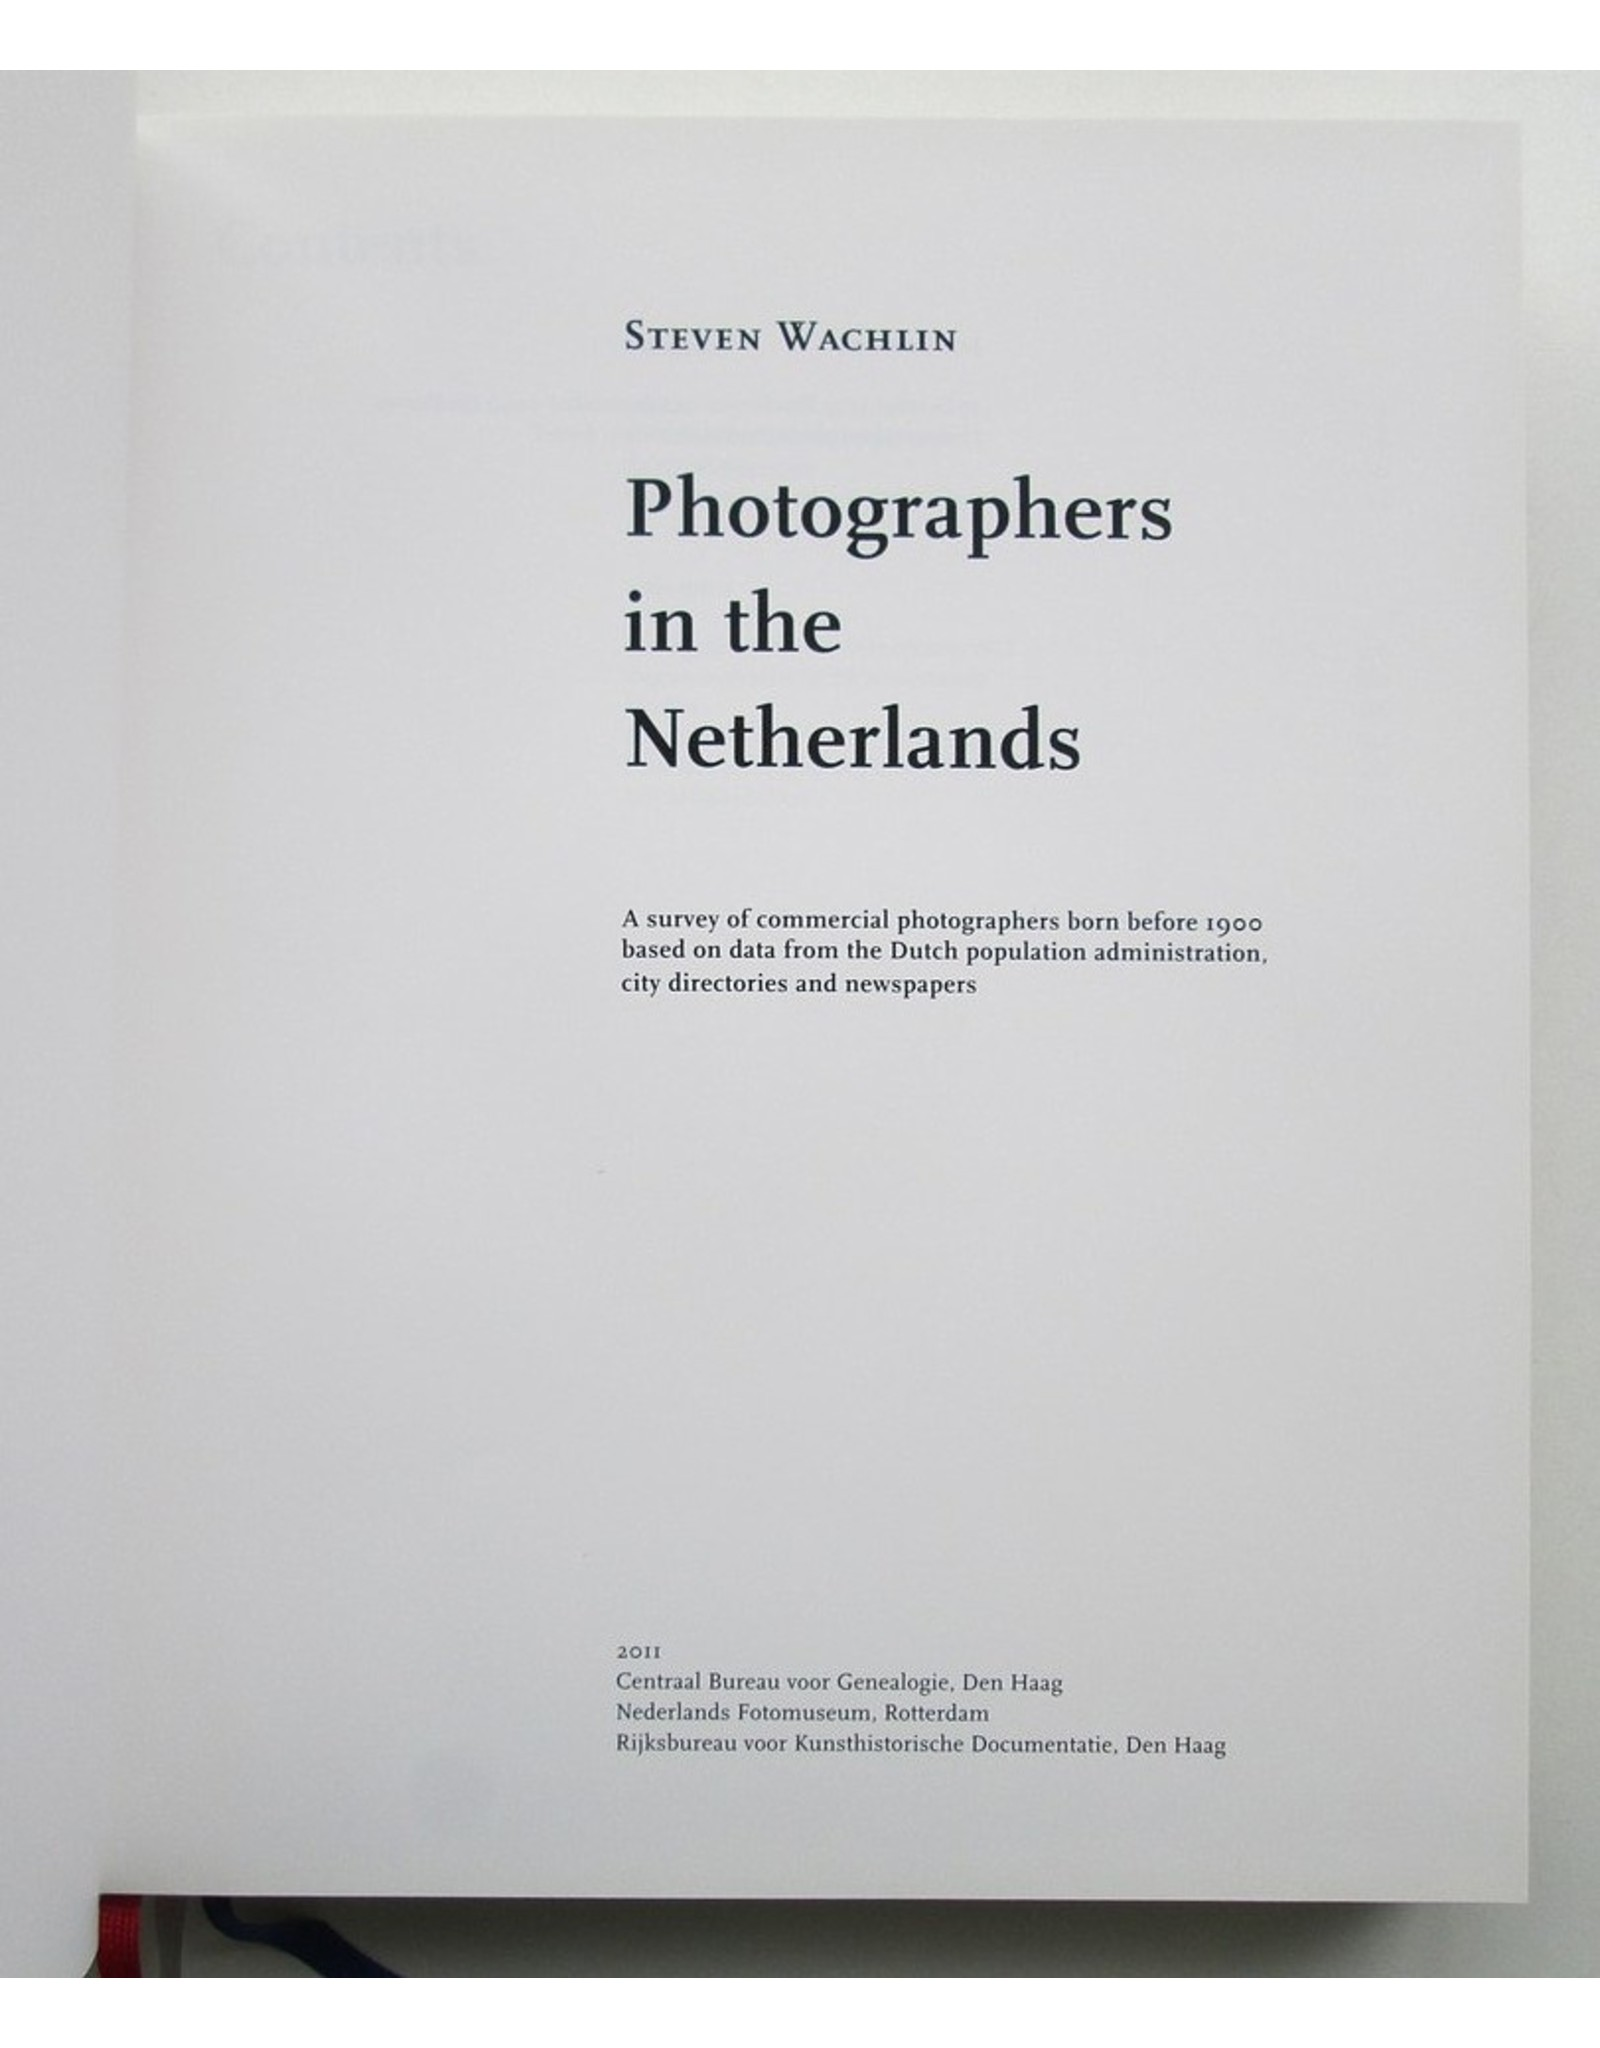 Steven Wachlin - Photographers in the Netherlands: A survey of commercial photographers born before 1900 [...]